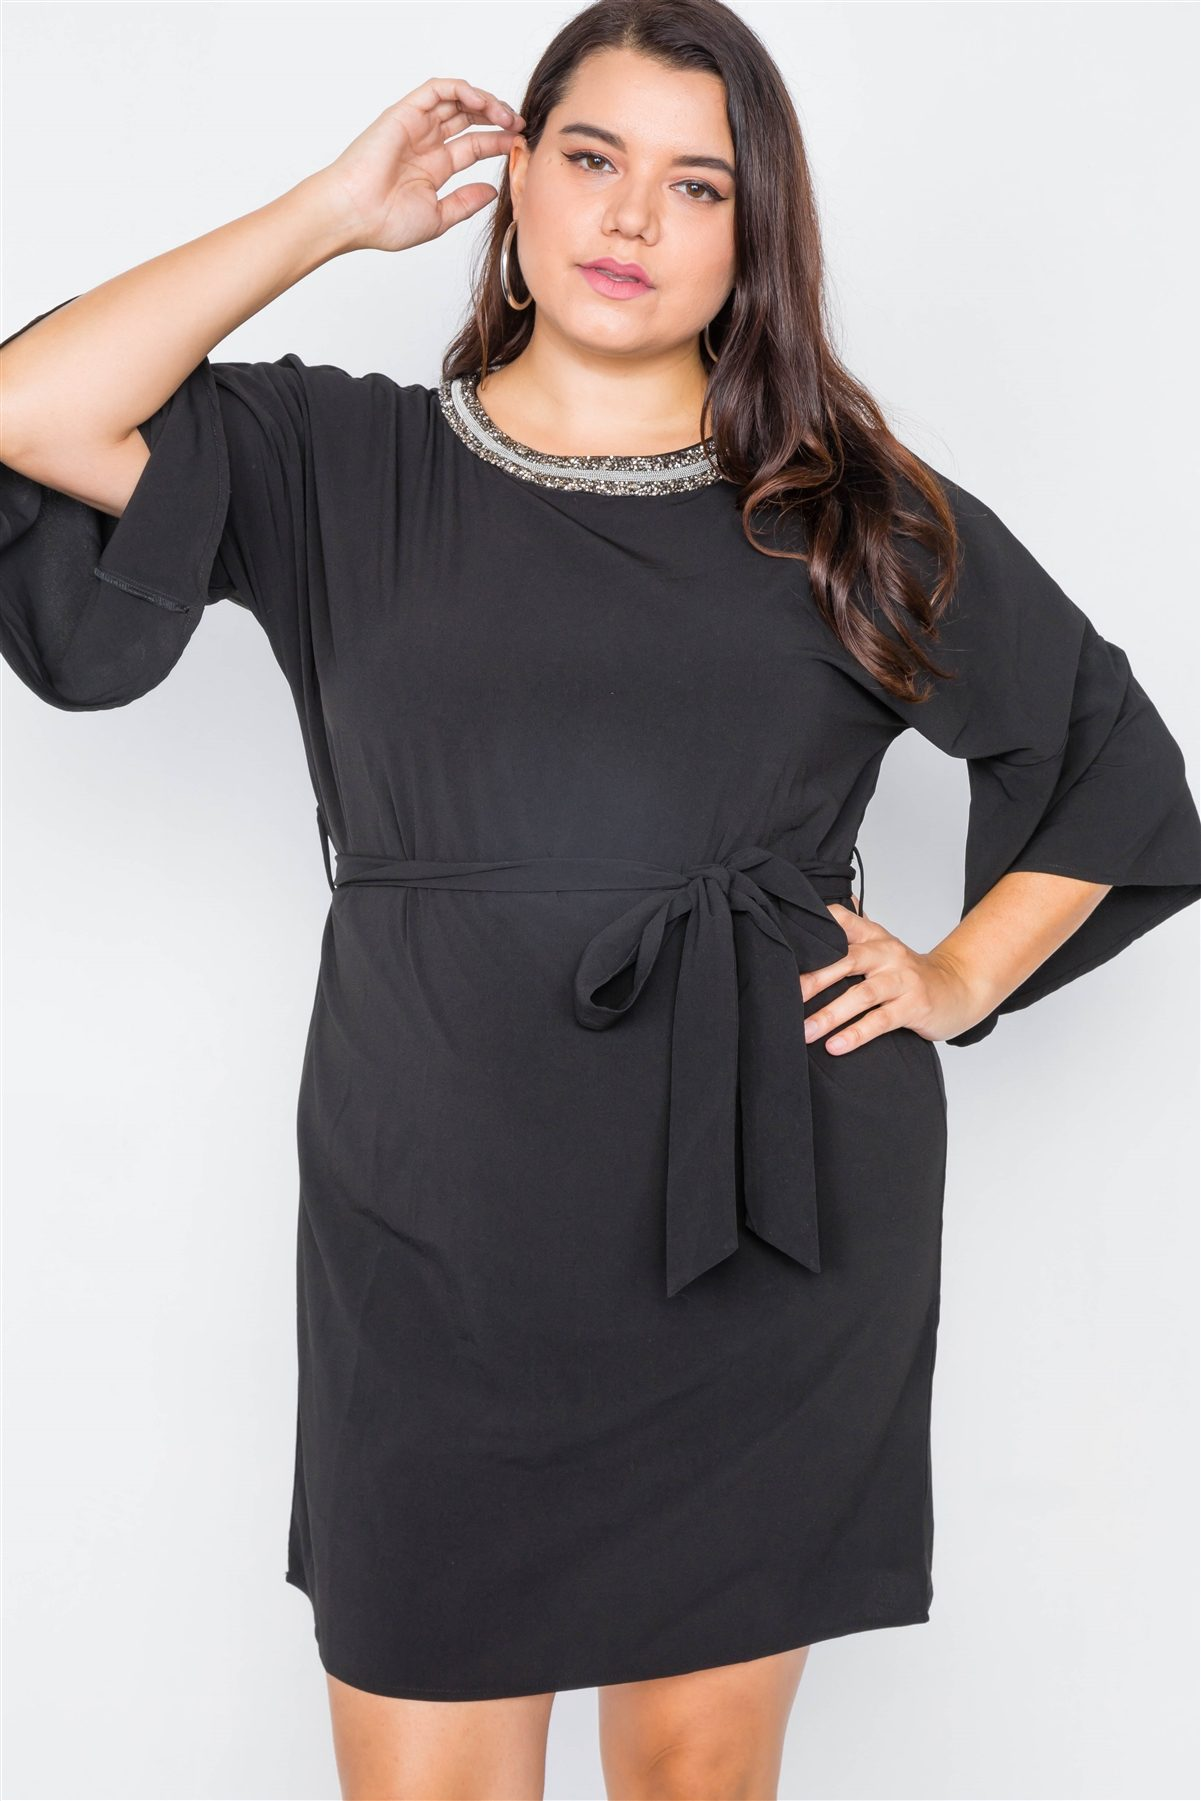 slaythedaybydcole,SLAY-  Beaded Neckline All Black Dress,Slay The Day By D Cole,